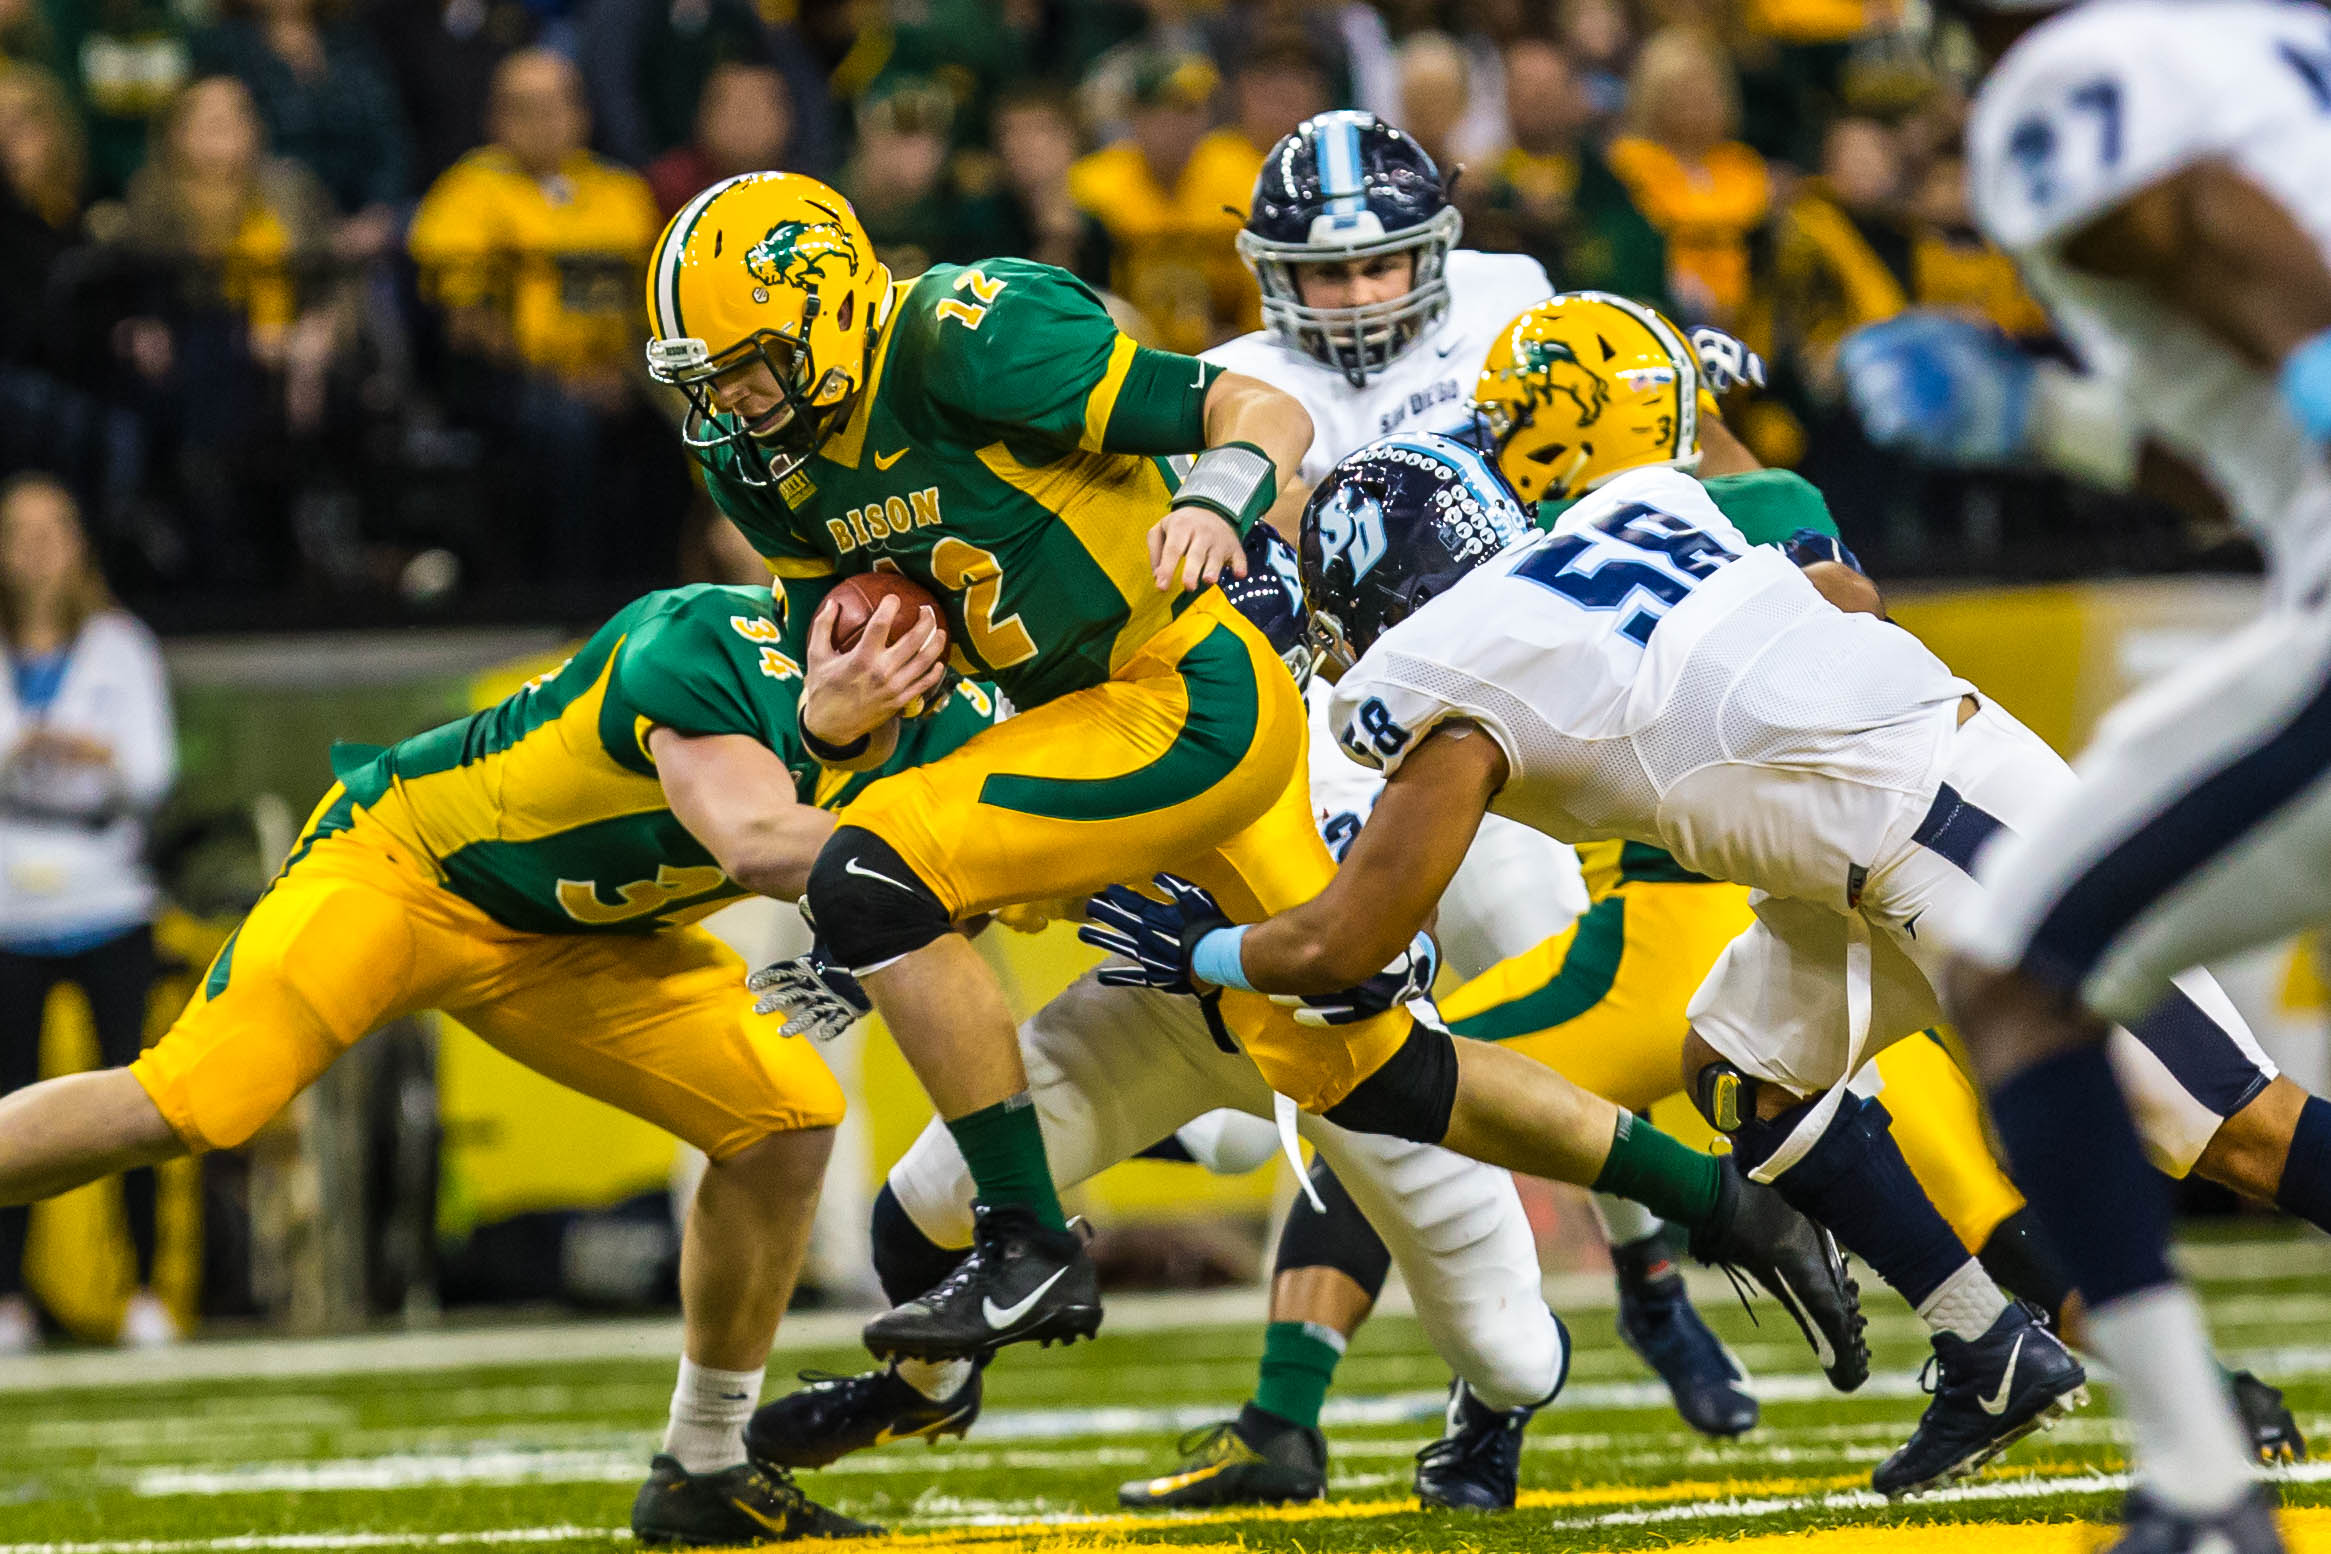 Bison Football Moving From ESPN3 to ESPN+ in 2018 - NDSU